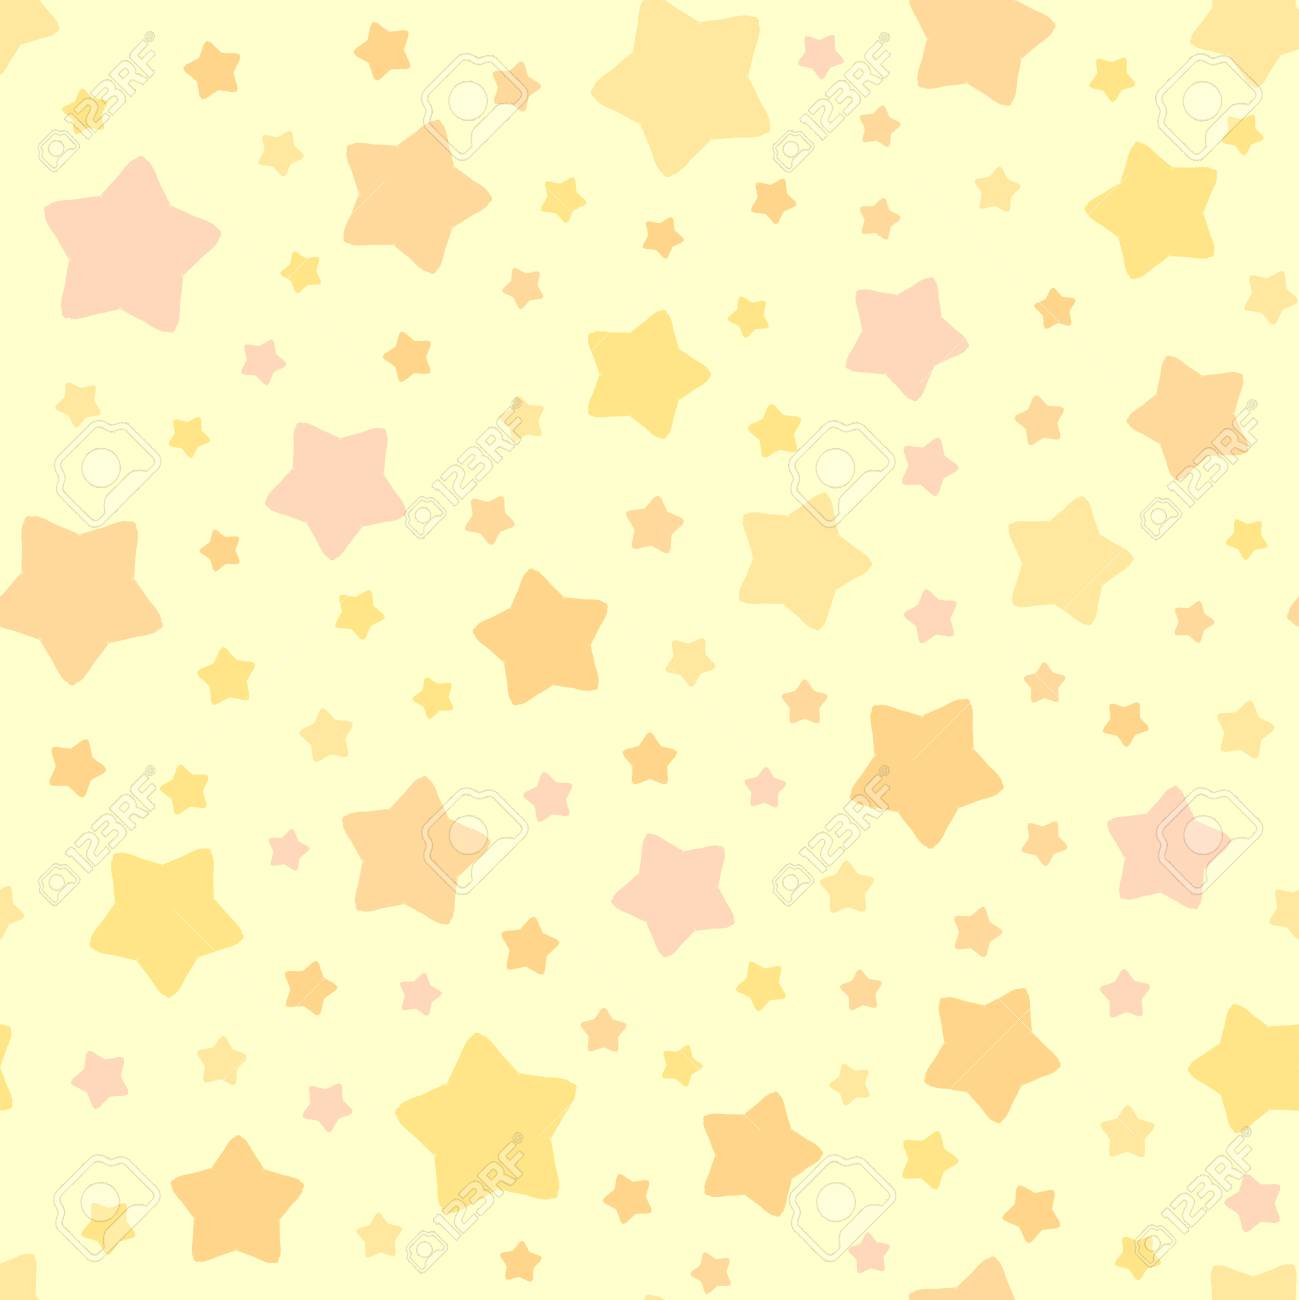 77935495 vector stars pattern seamless sky background pastel pink orange yellow colors cute decorative orname